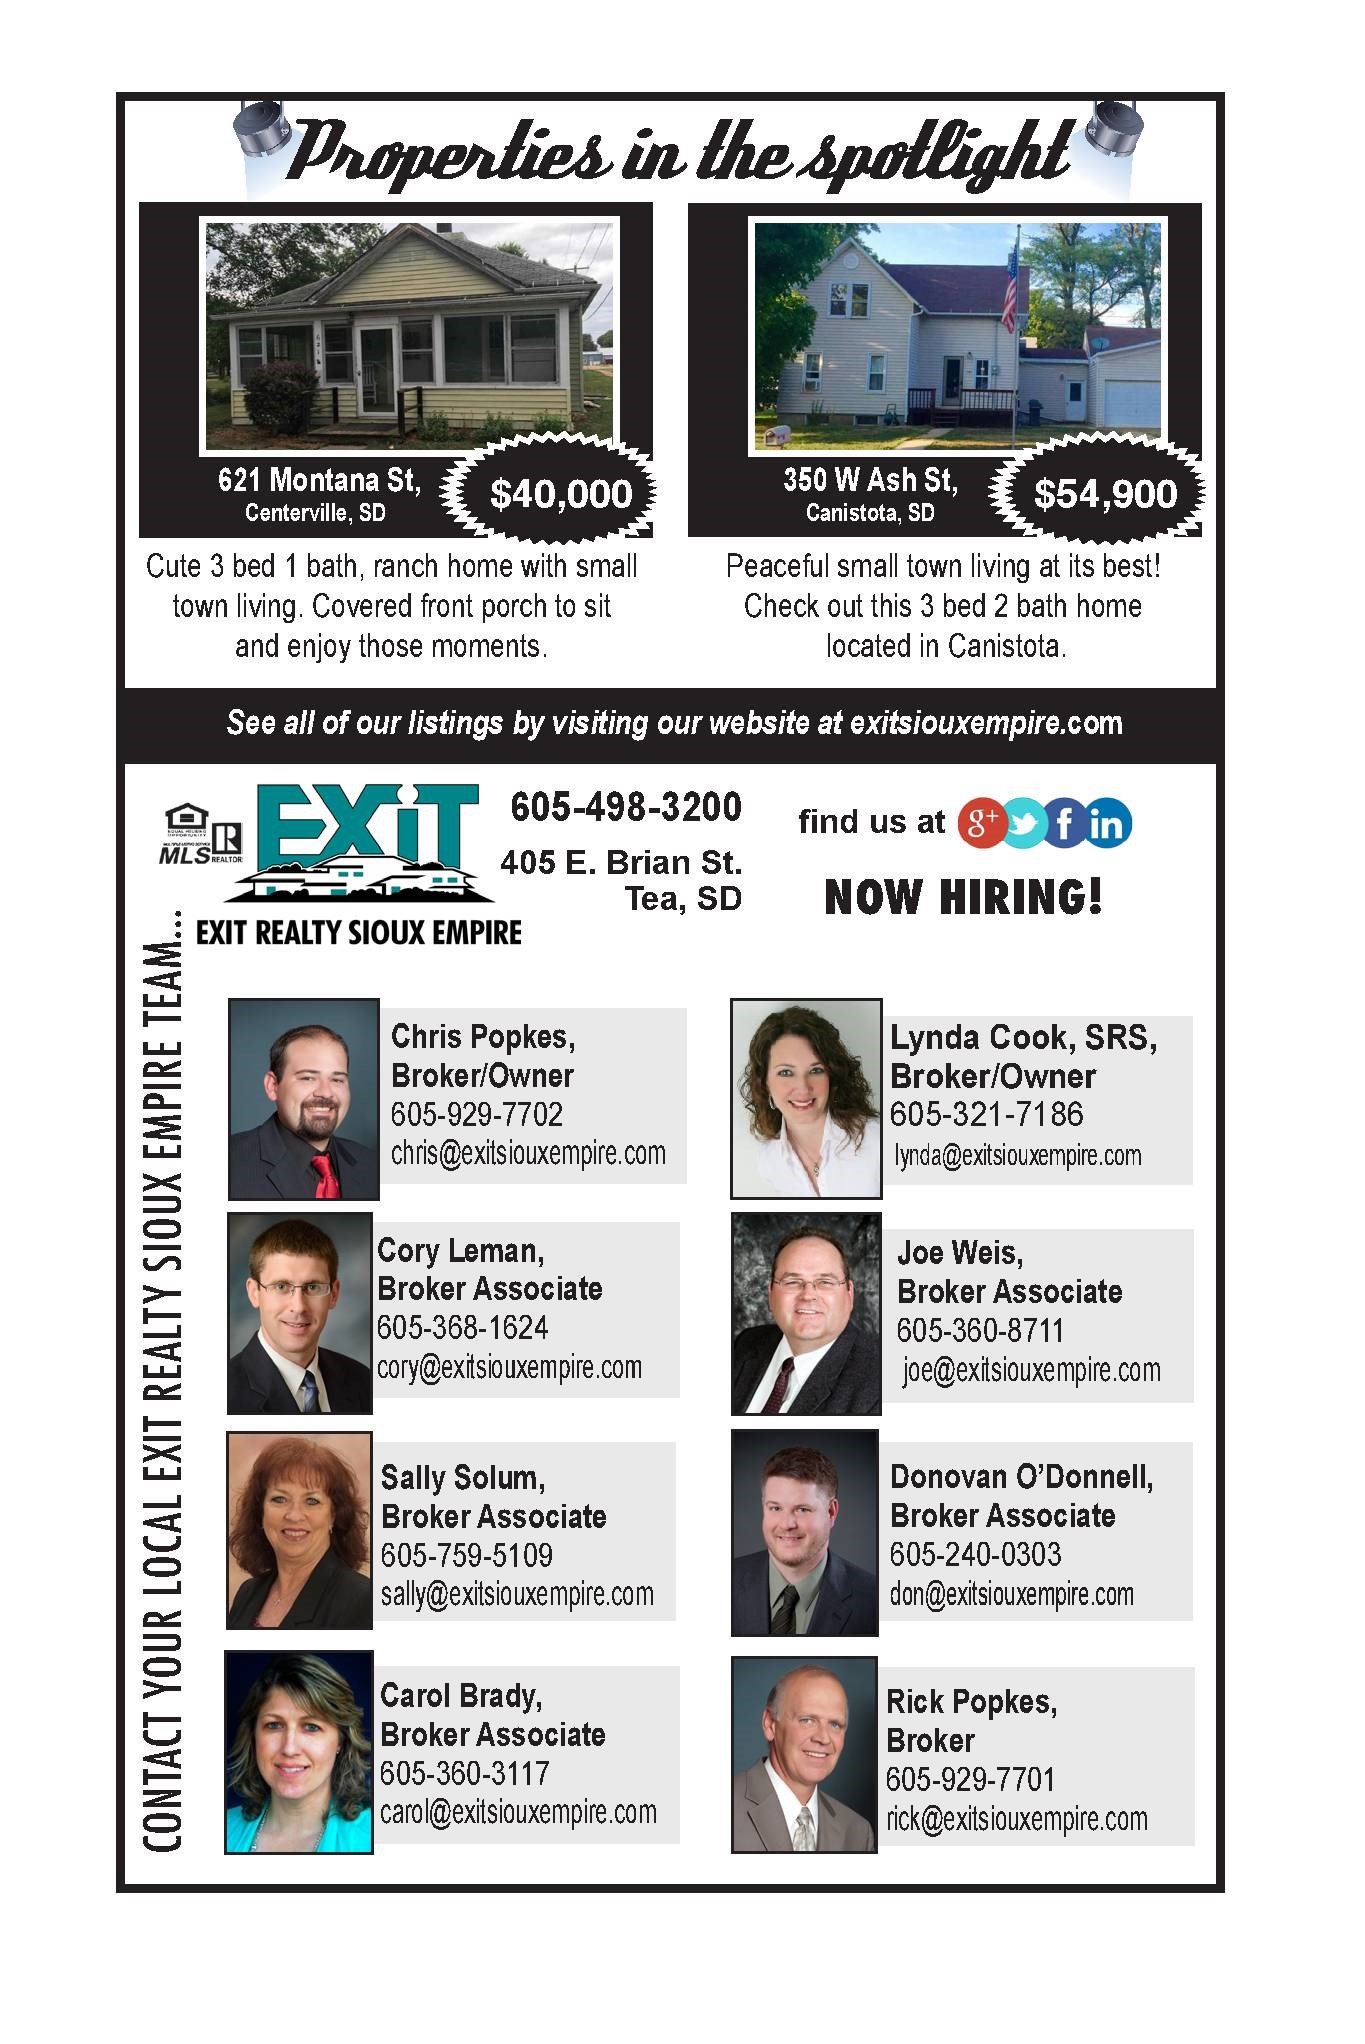 Sept. 29, 2016 EXIT Realty Sioux Empire's Newspaper ad!